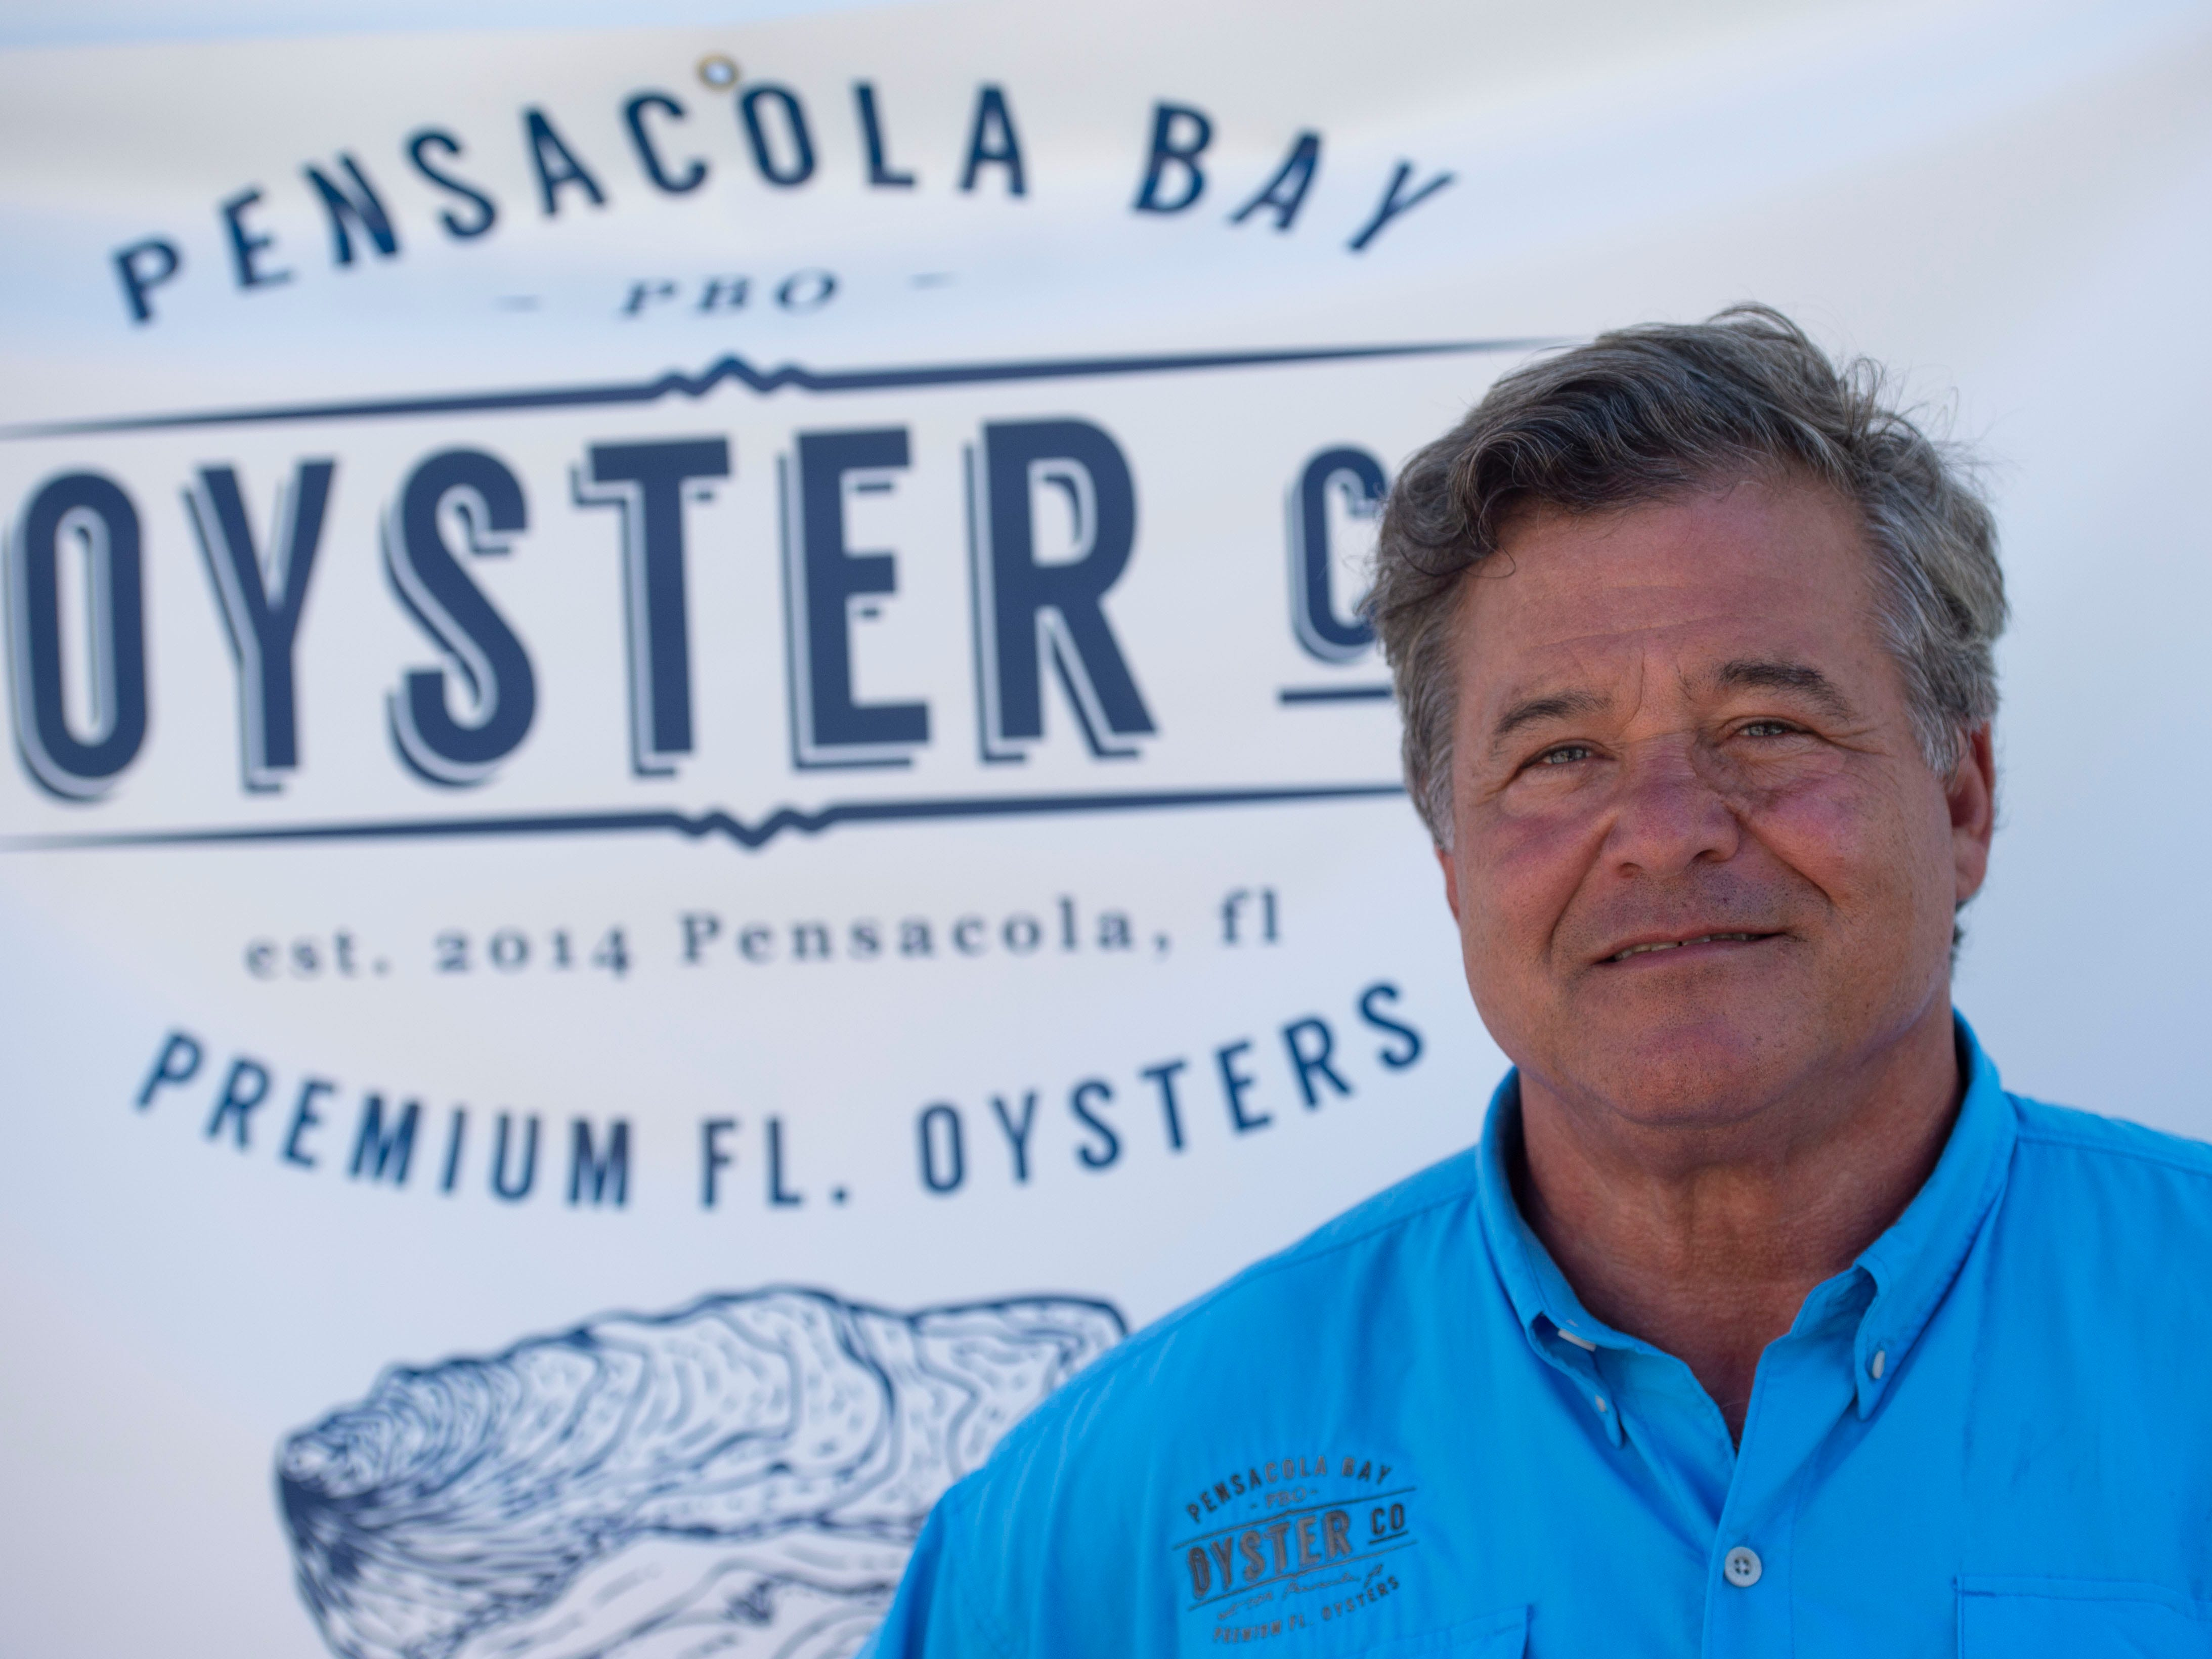 Oyster farmer sees business as 'the key' to saving Florida's environment